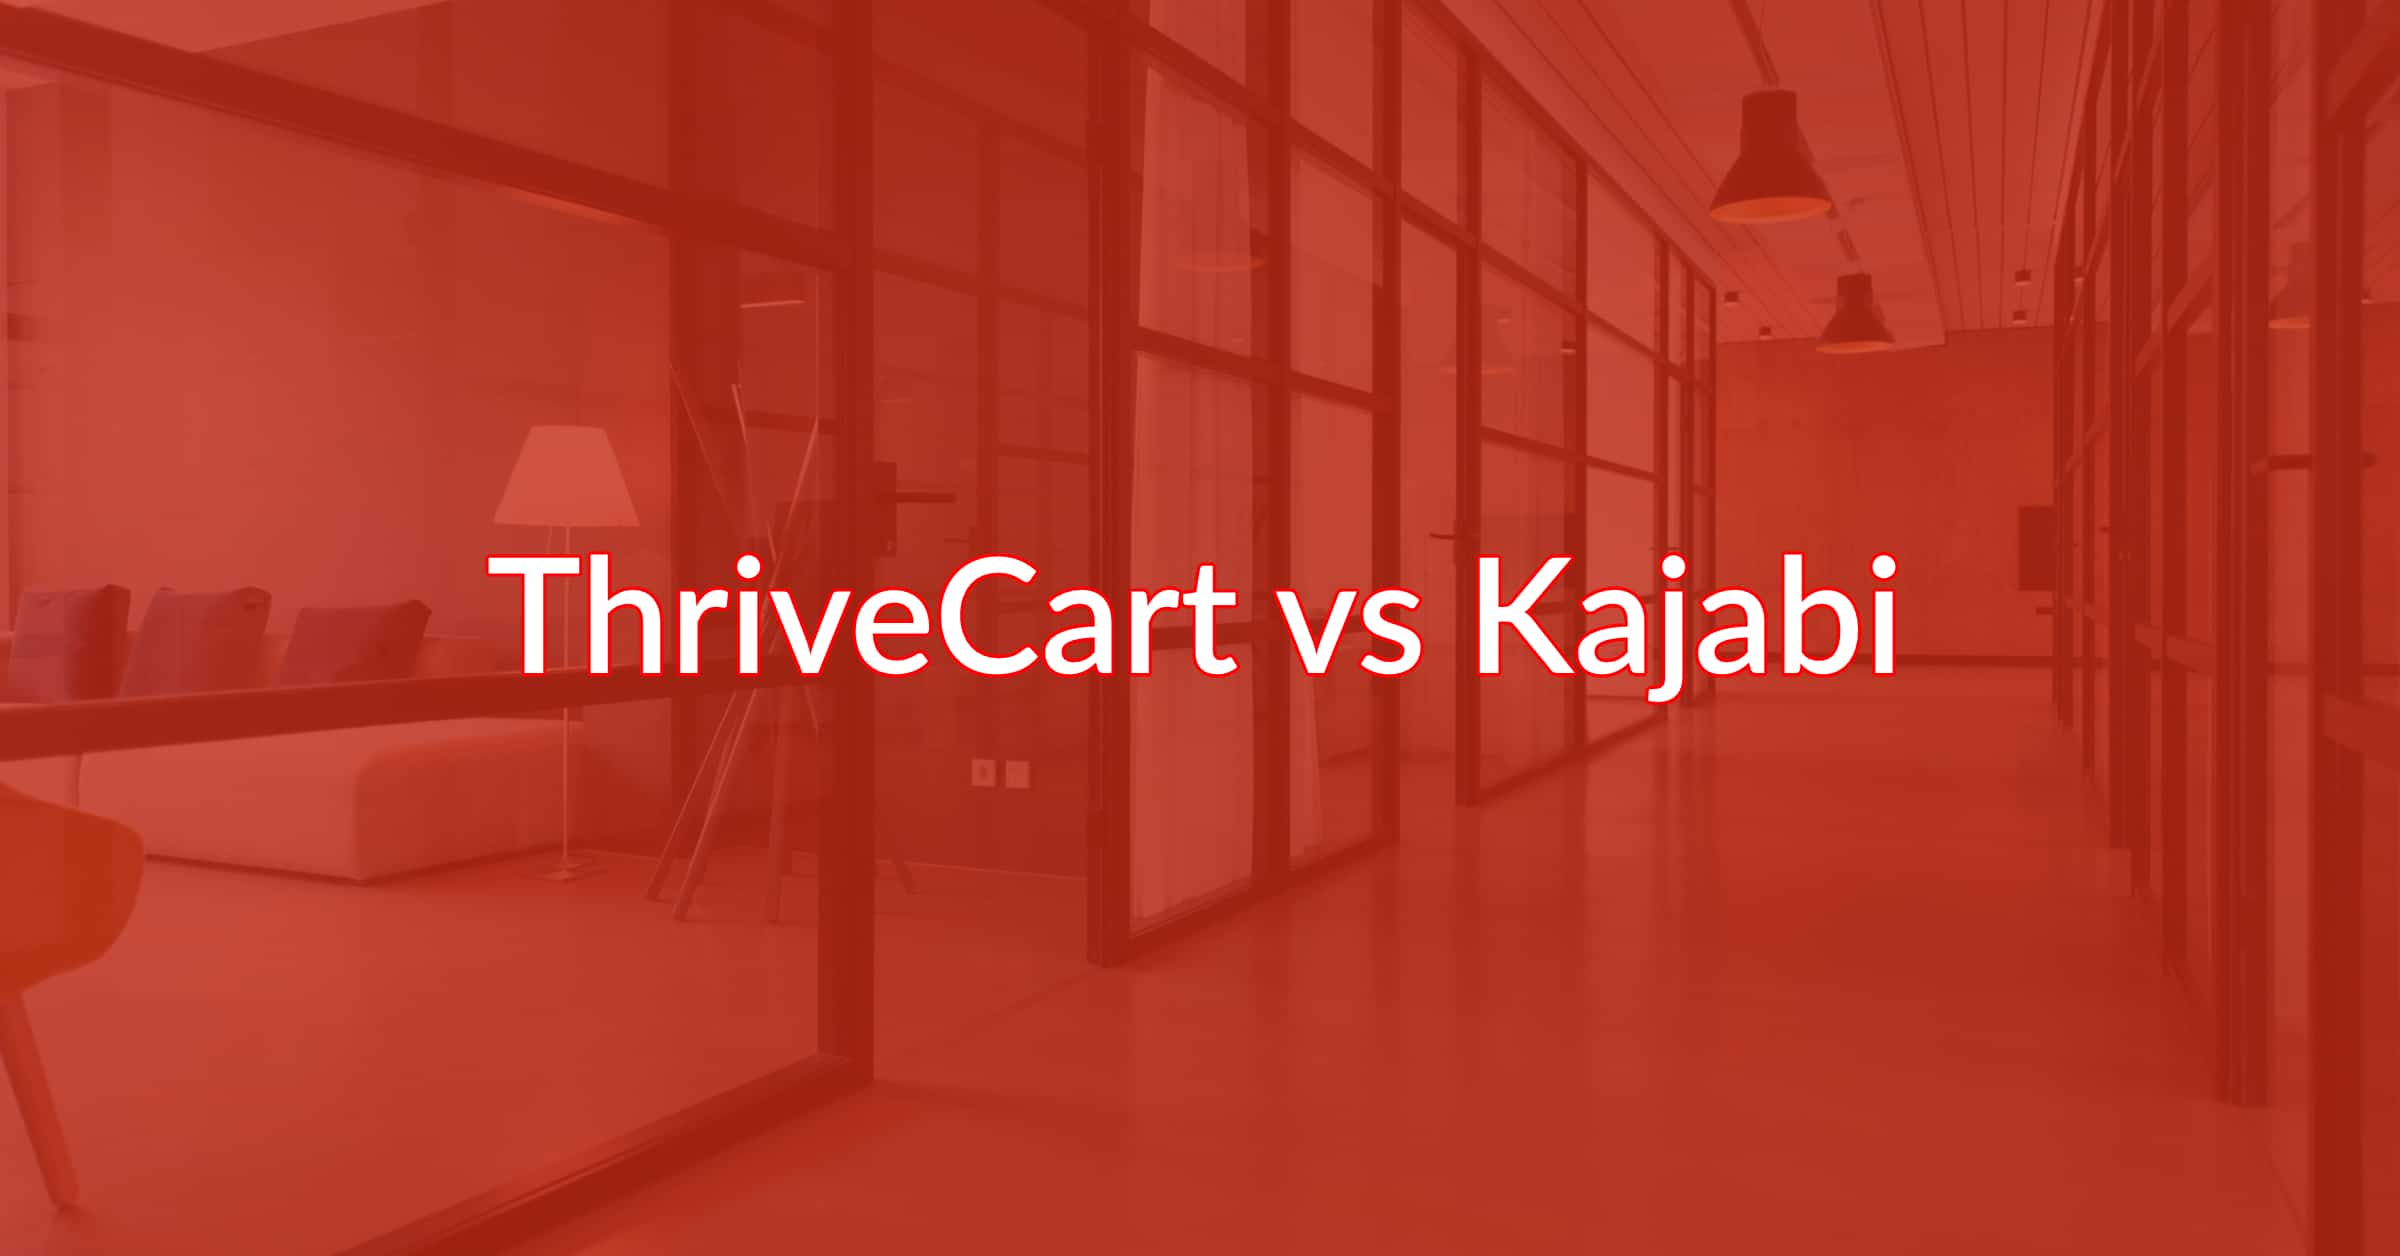 ThriveCart vs Kajabi: Which Is Best For Your Business?